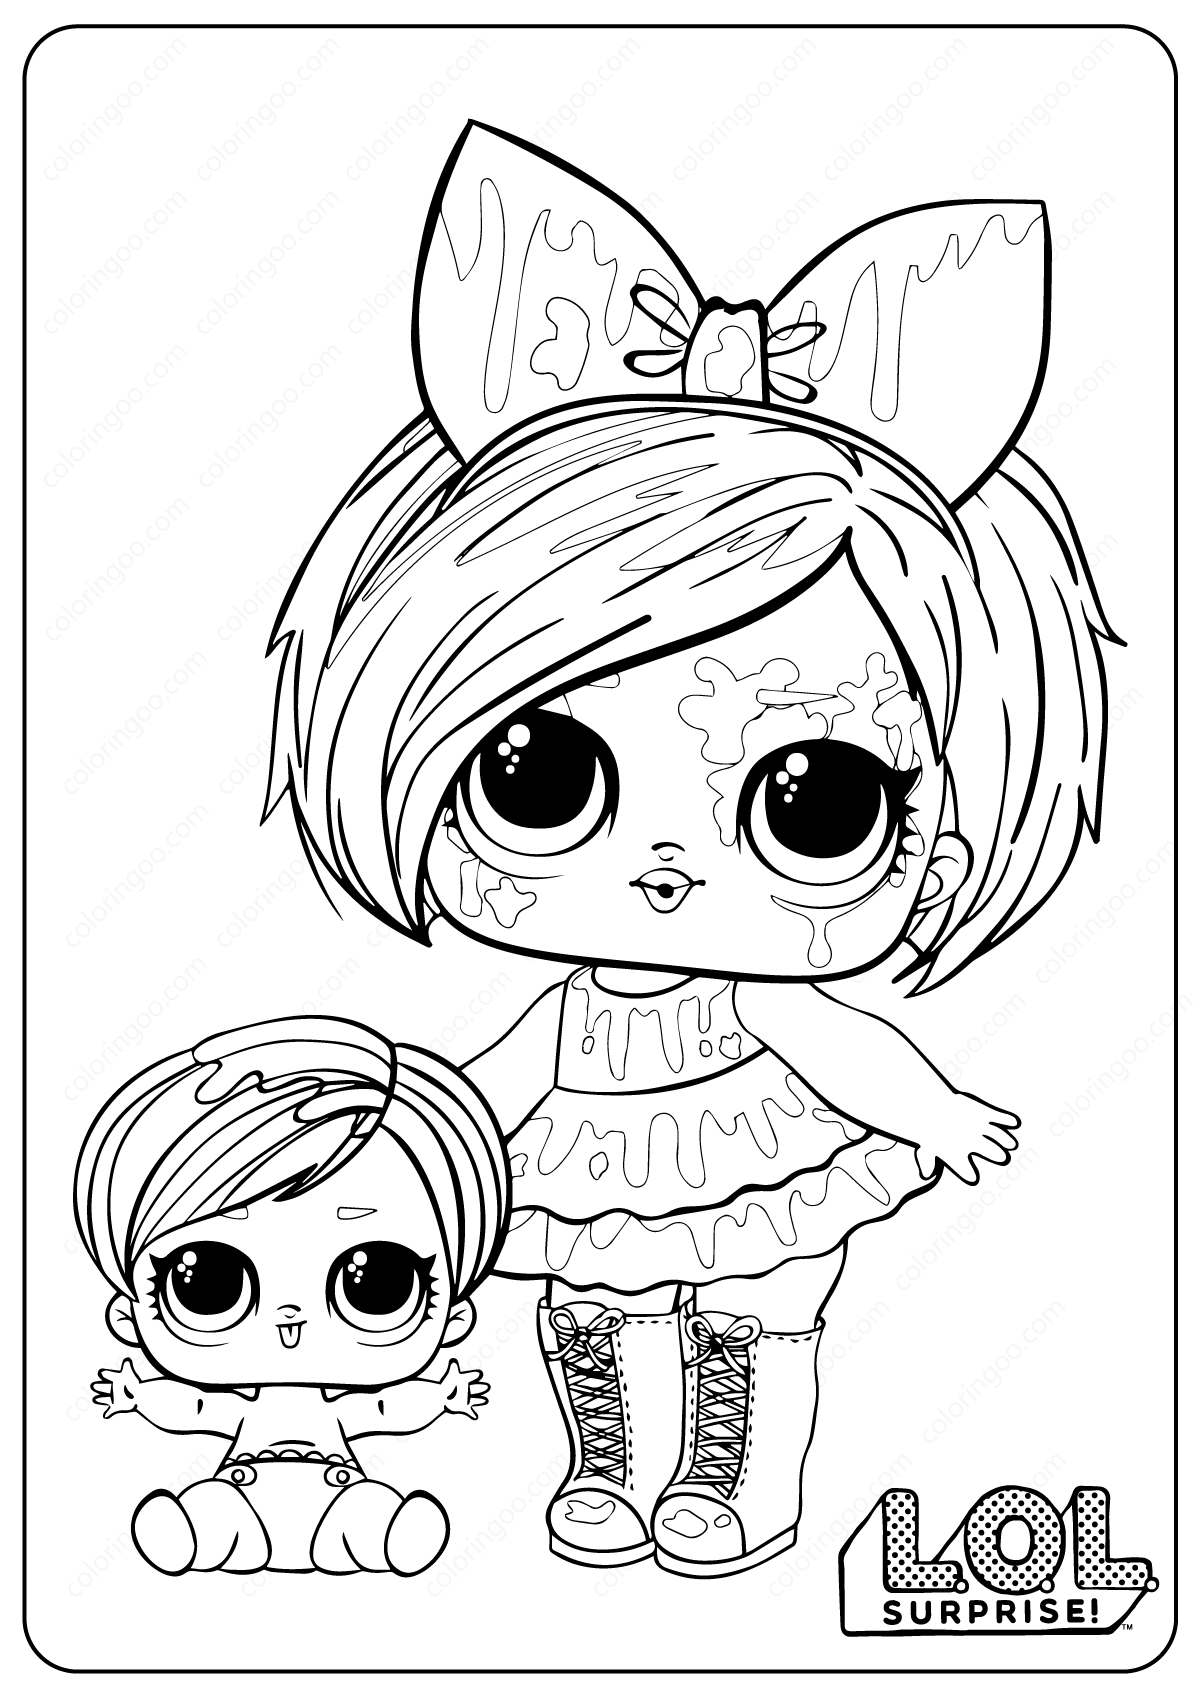 Printable LOL Surprise Splatters Coloring Pages - Coloring Home